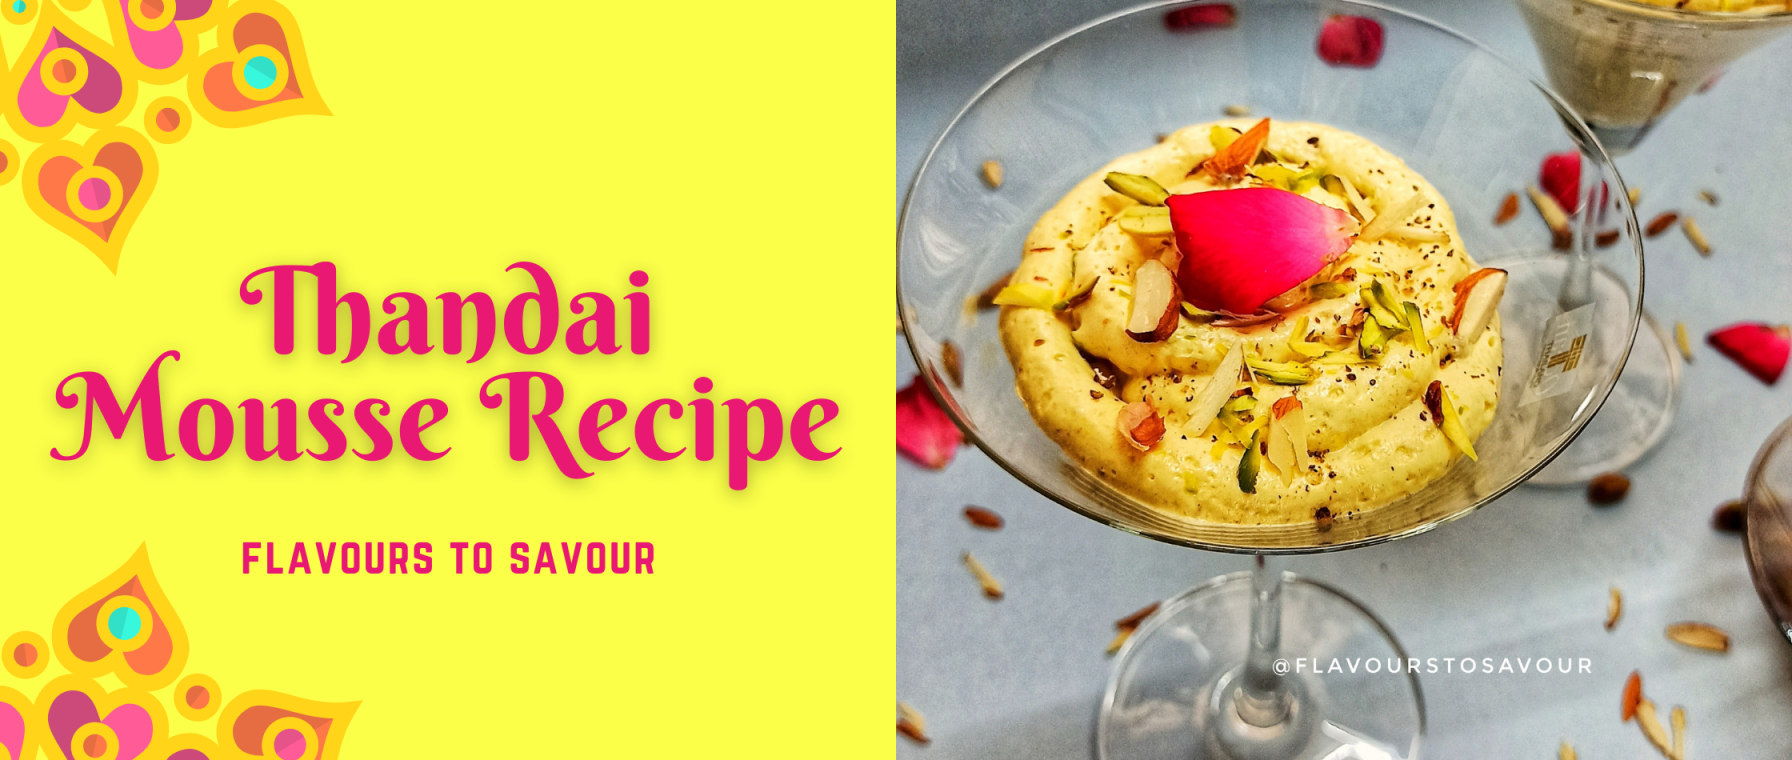 How to make Thandai Mousse